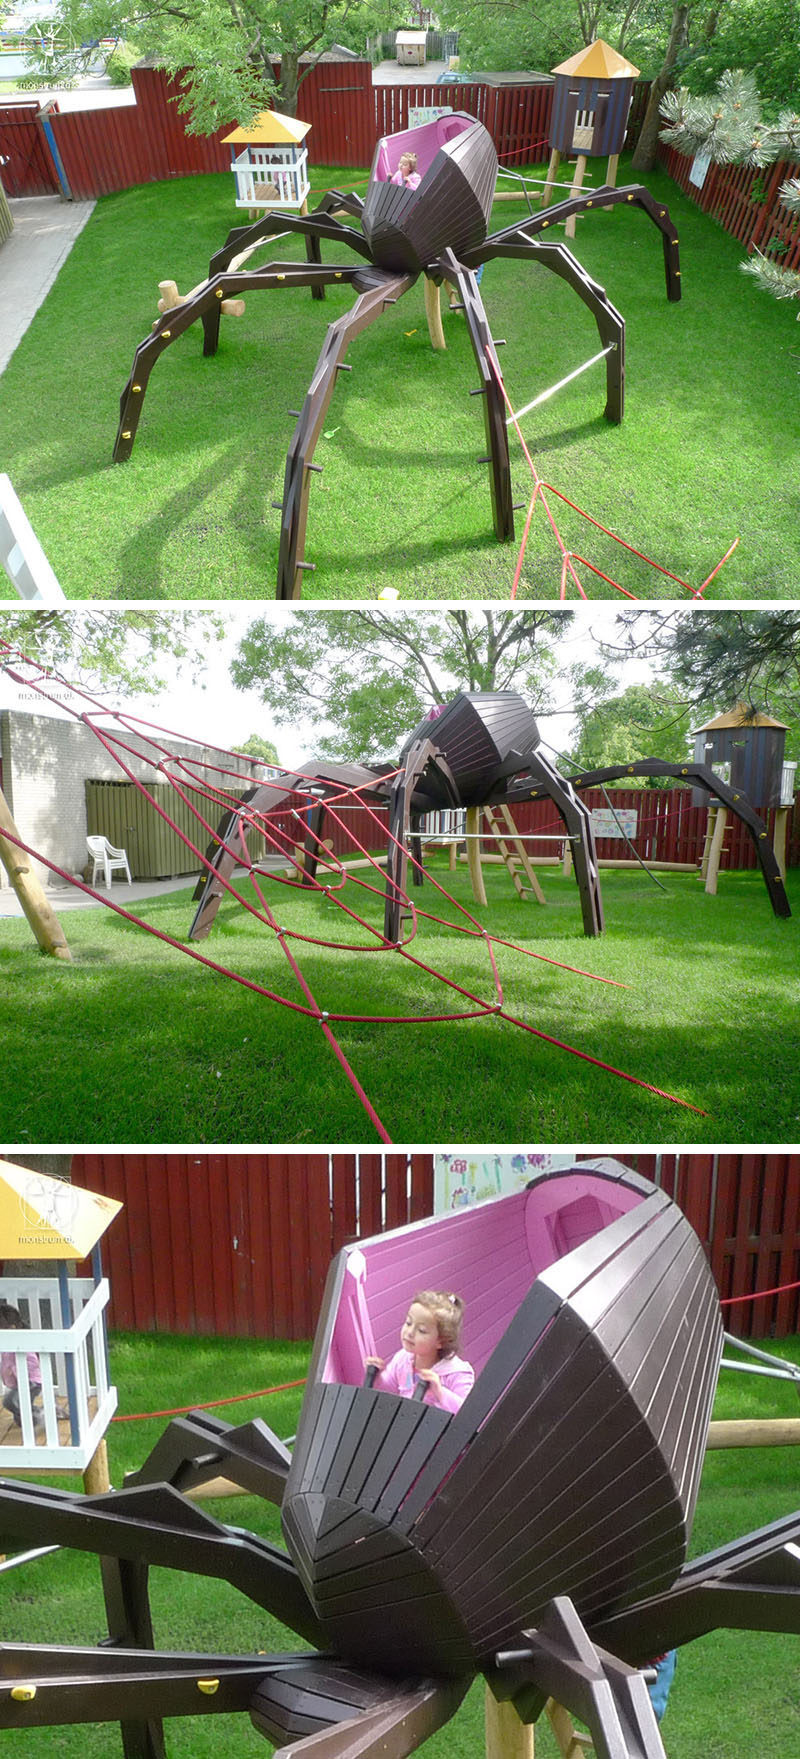 15 Creative Playground Designs You'll Wish Existed When ...